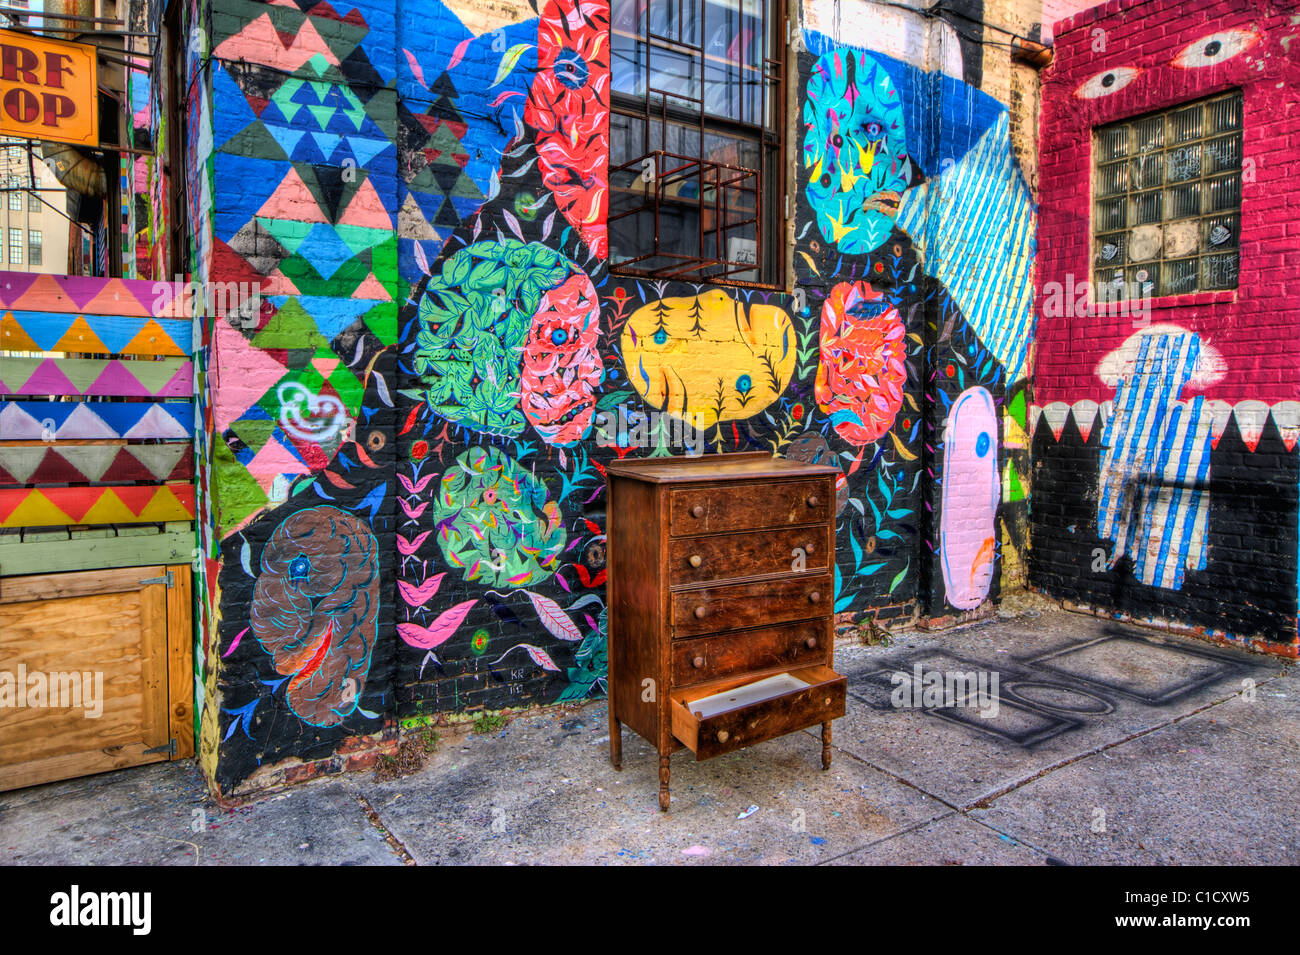 Abandoned chest of drawers sits next to a graffiti covered building in Williamsburg, Brooklyn - Stock Image